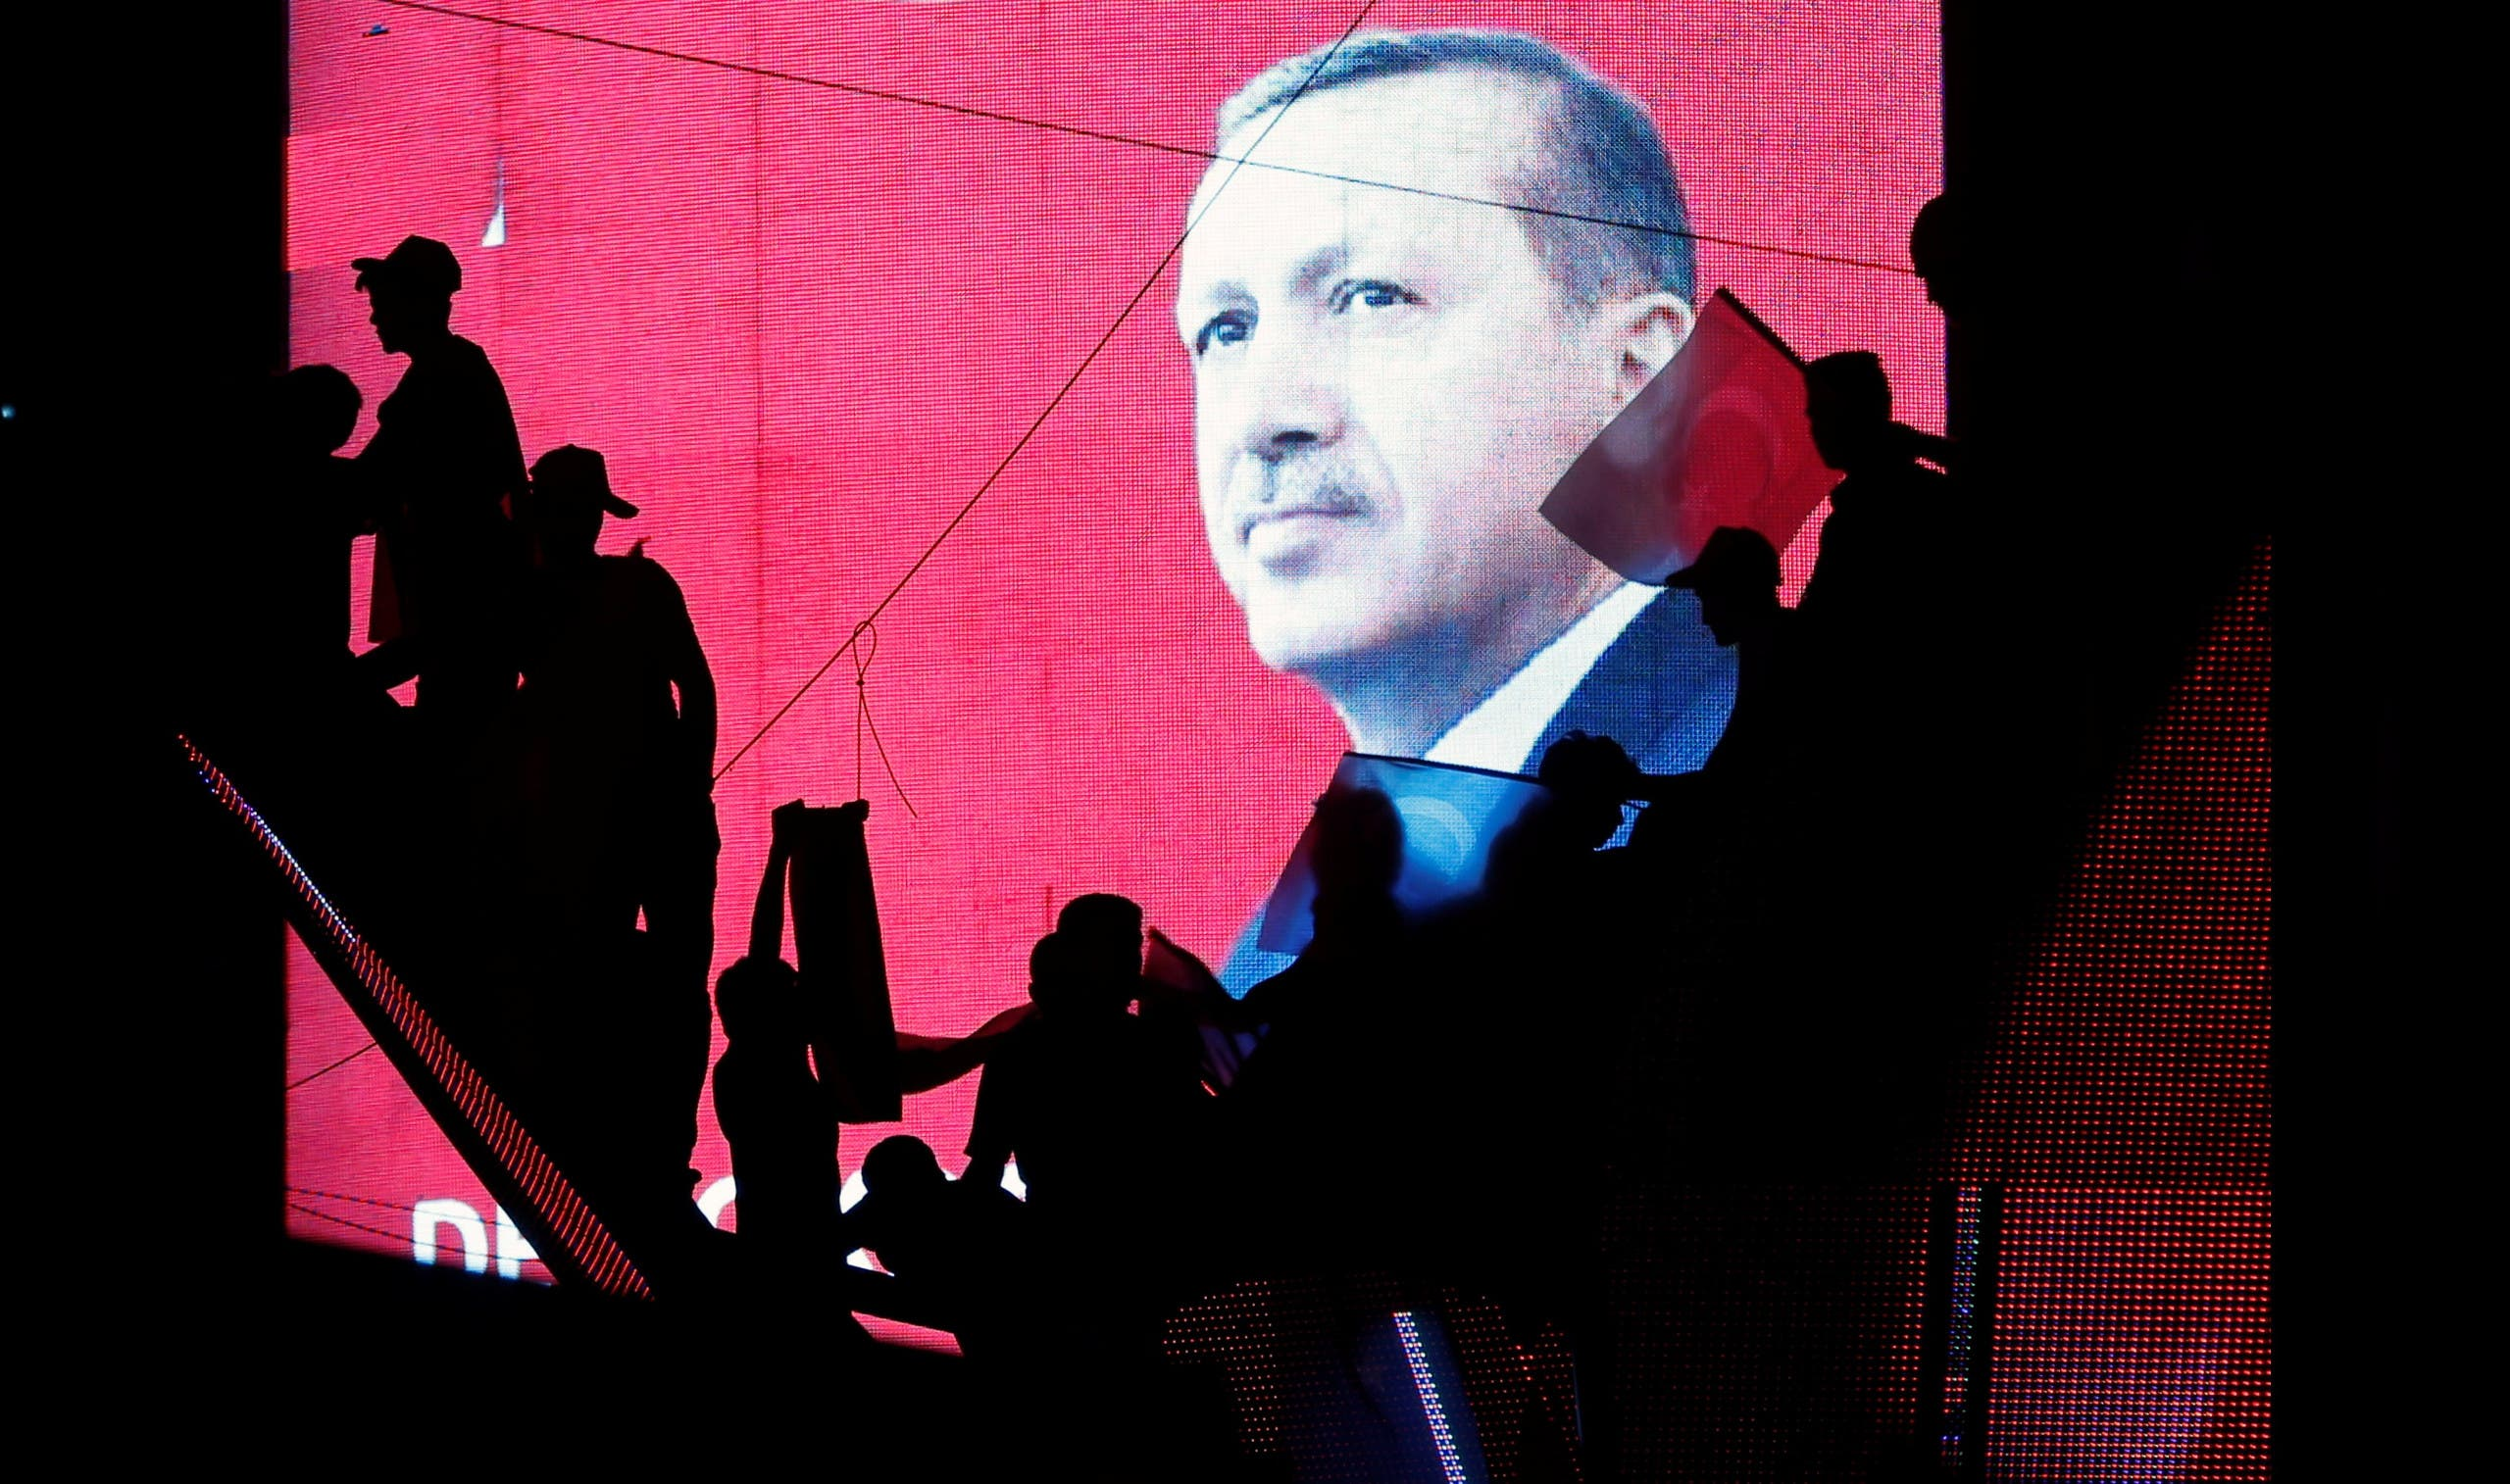 Turkish Supporters are silhouetted against a screan showing President Tayyip Erdogan during a pro-government demonstration in Ankara, Turkey, July 17, 2016. (Reuters)